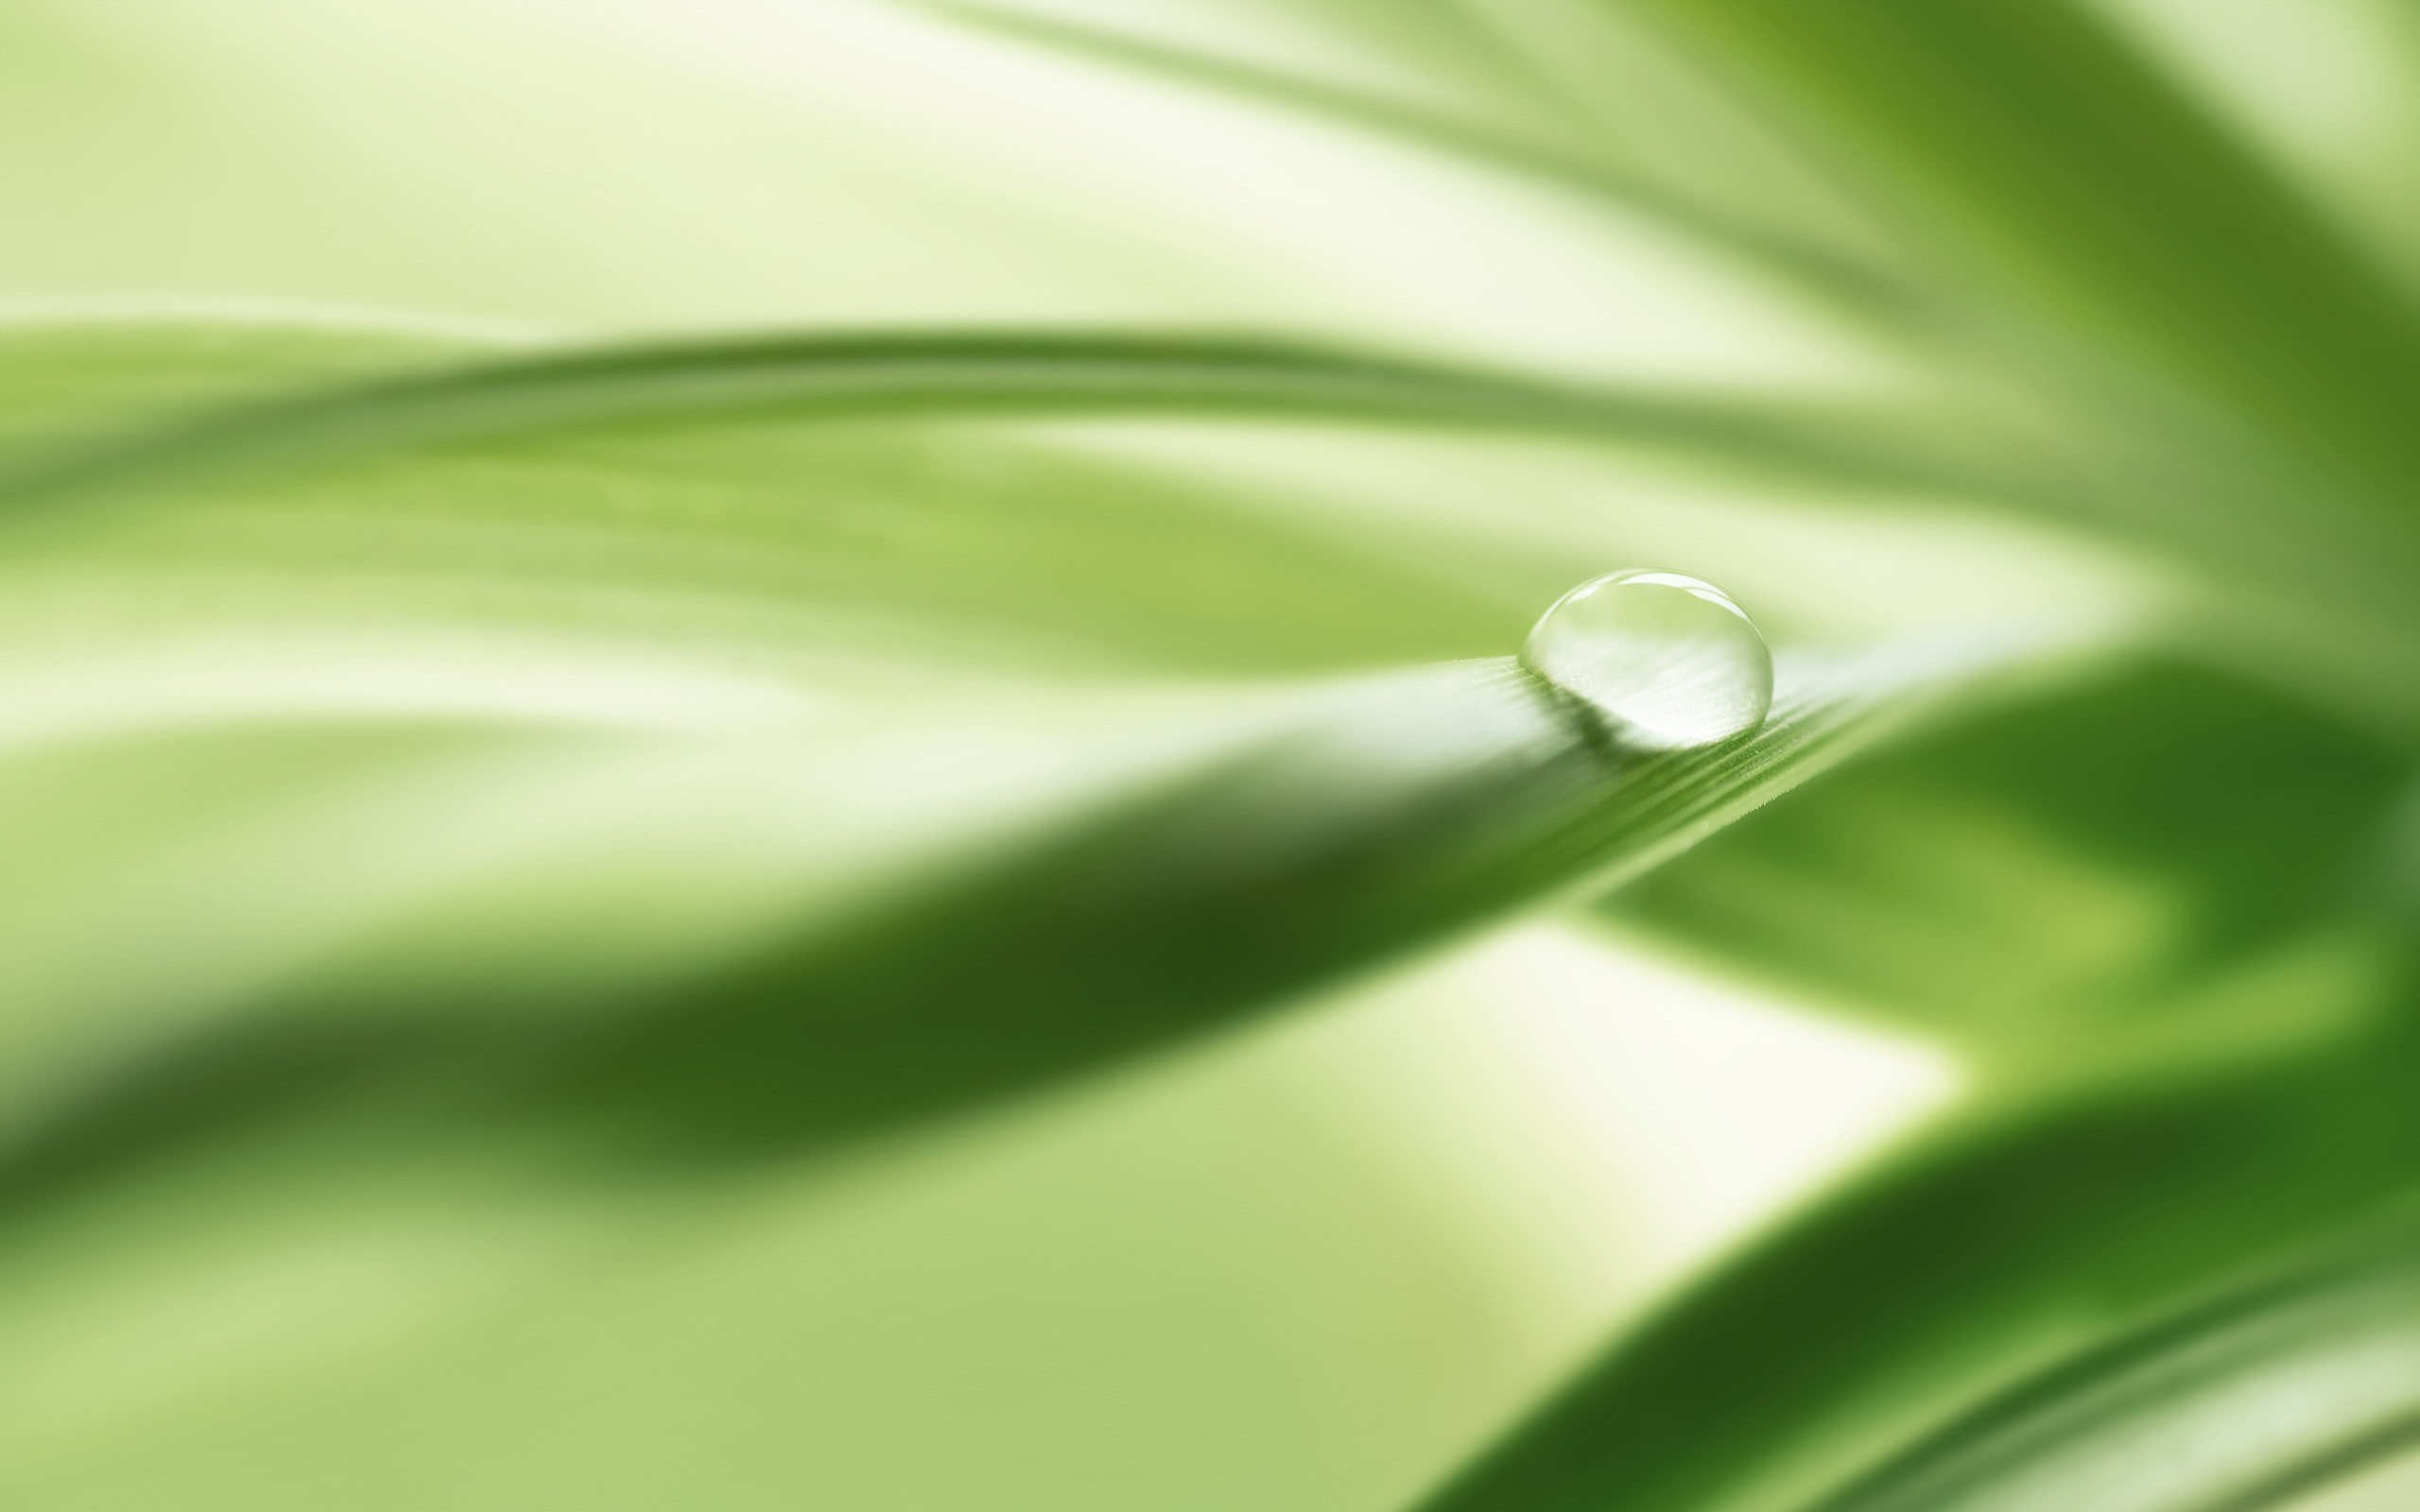 Download Wallpaper green nature leaves water drops macro dew -8845-12